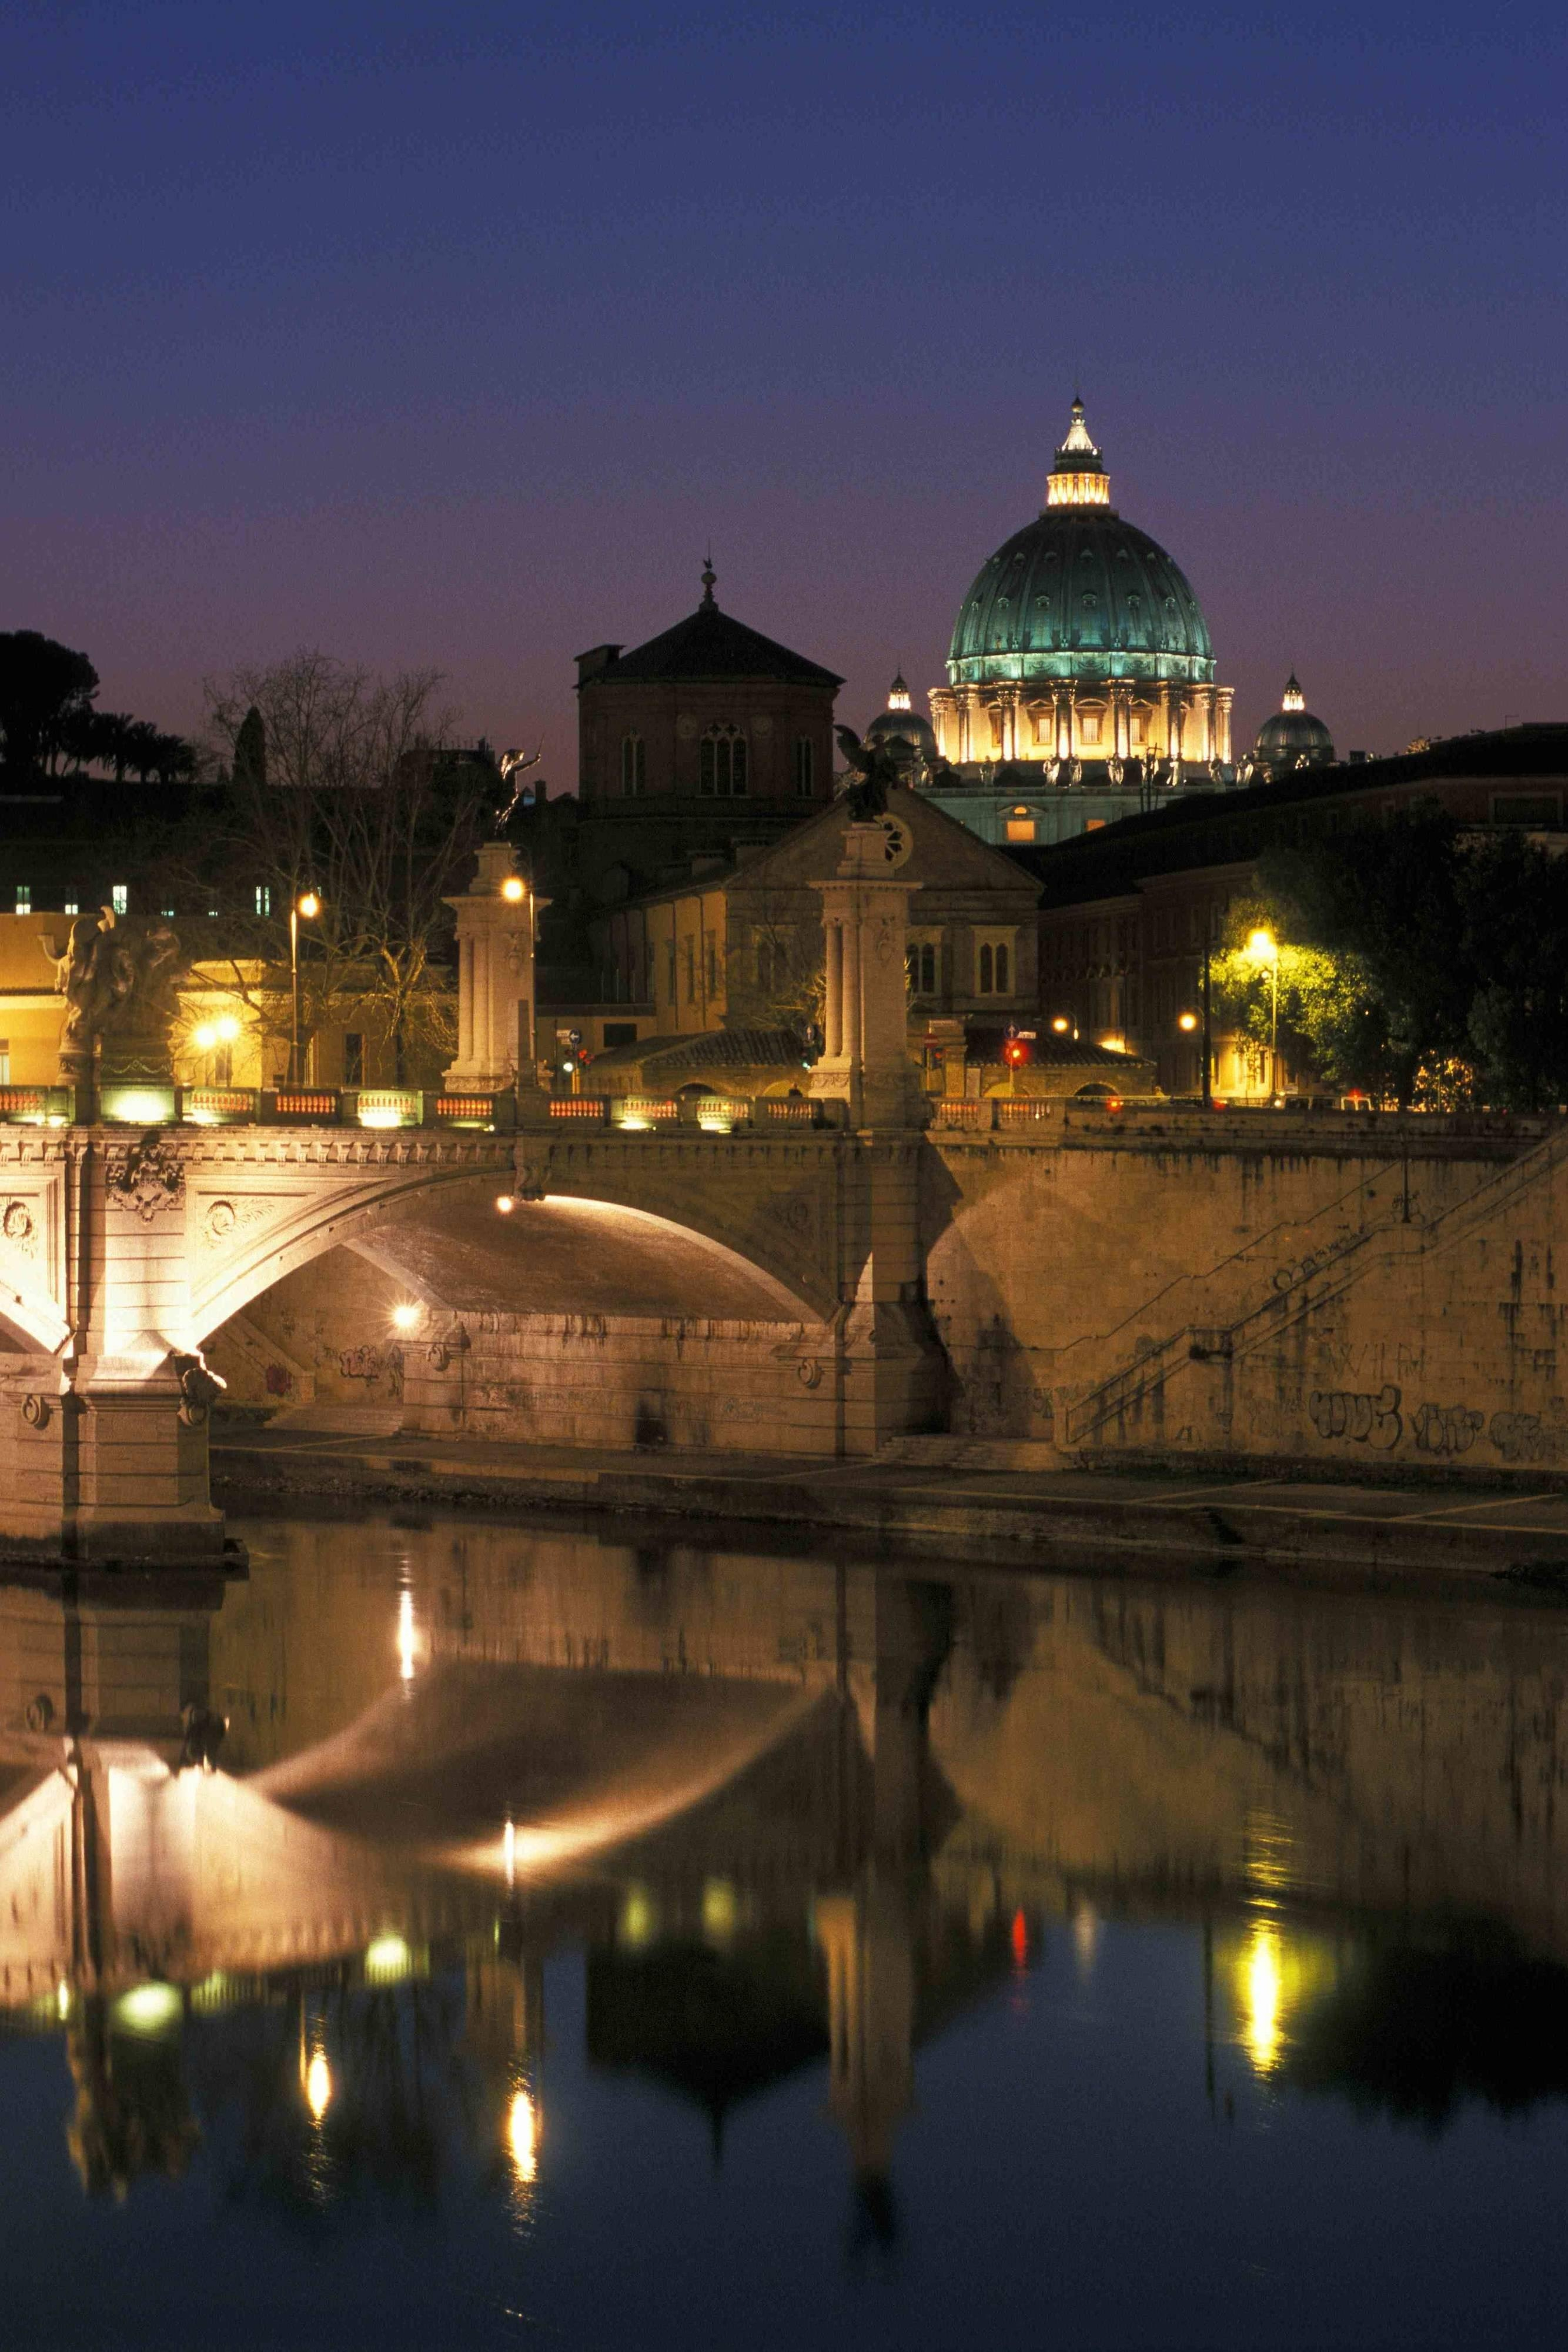 San Pietro and the Vatican City in Rome